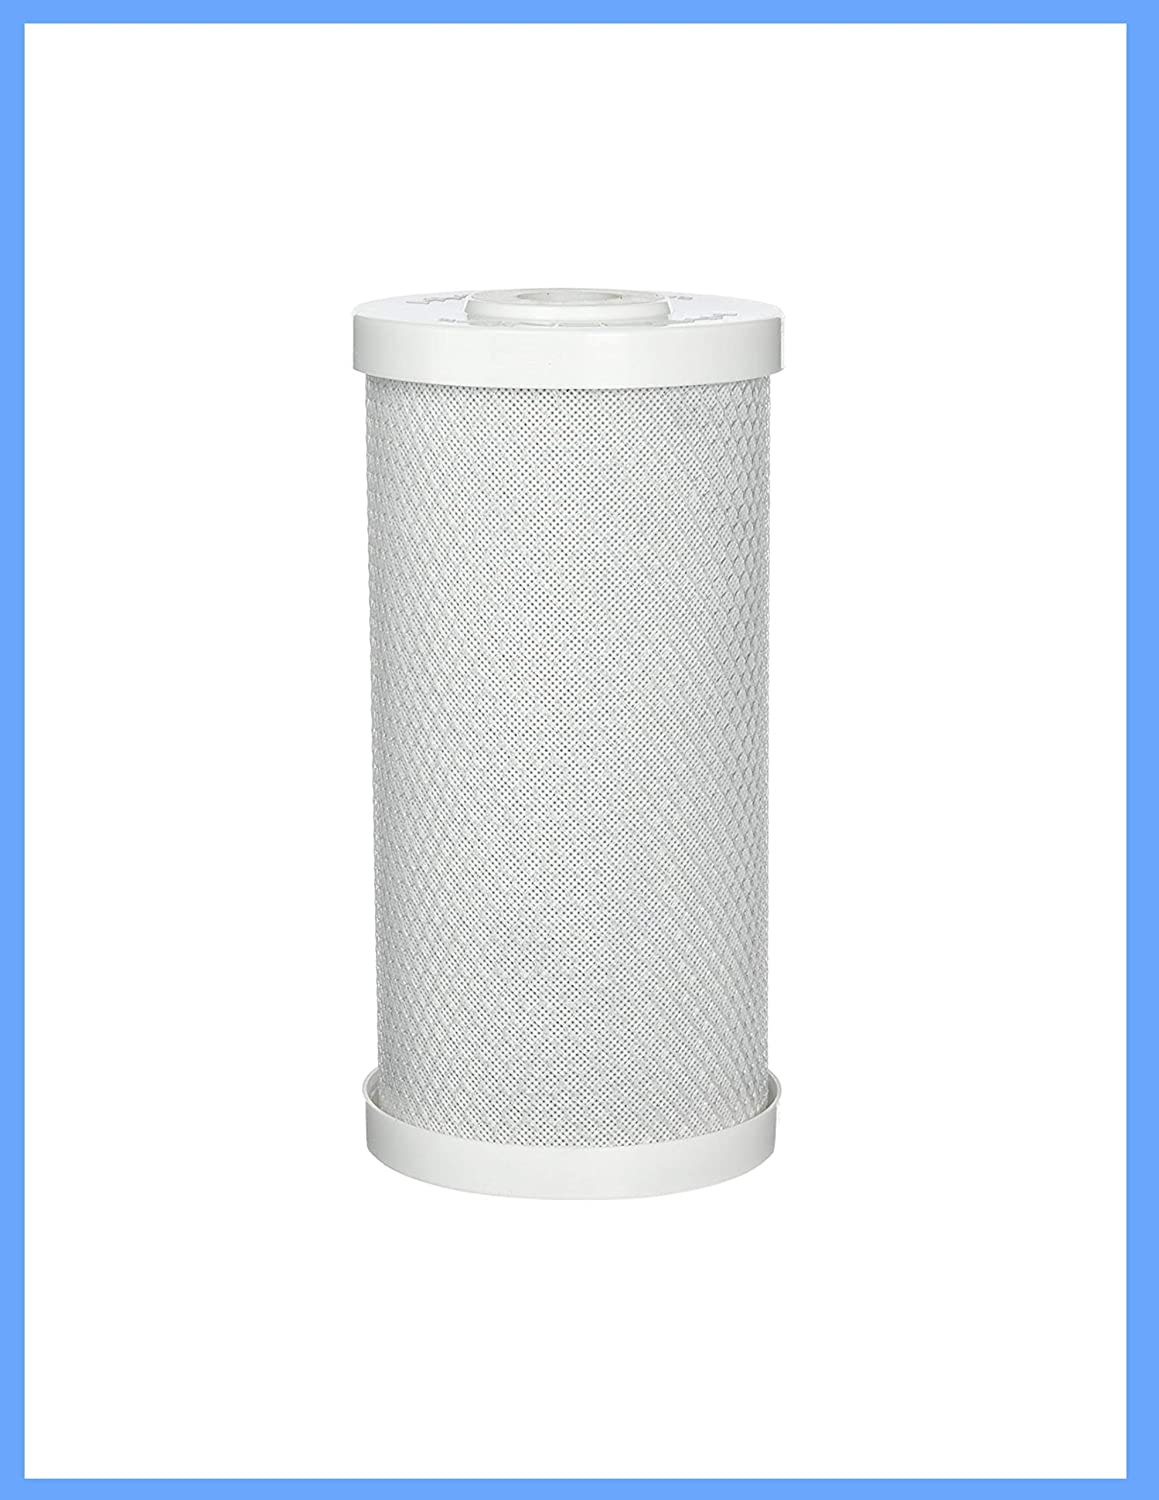 Compatible with AO-WH-PREL-RCP - Carbon Sediment Filter Replacement 4.5 Inch - 5 Micron Filtration